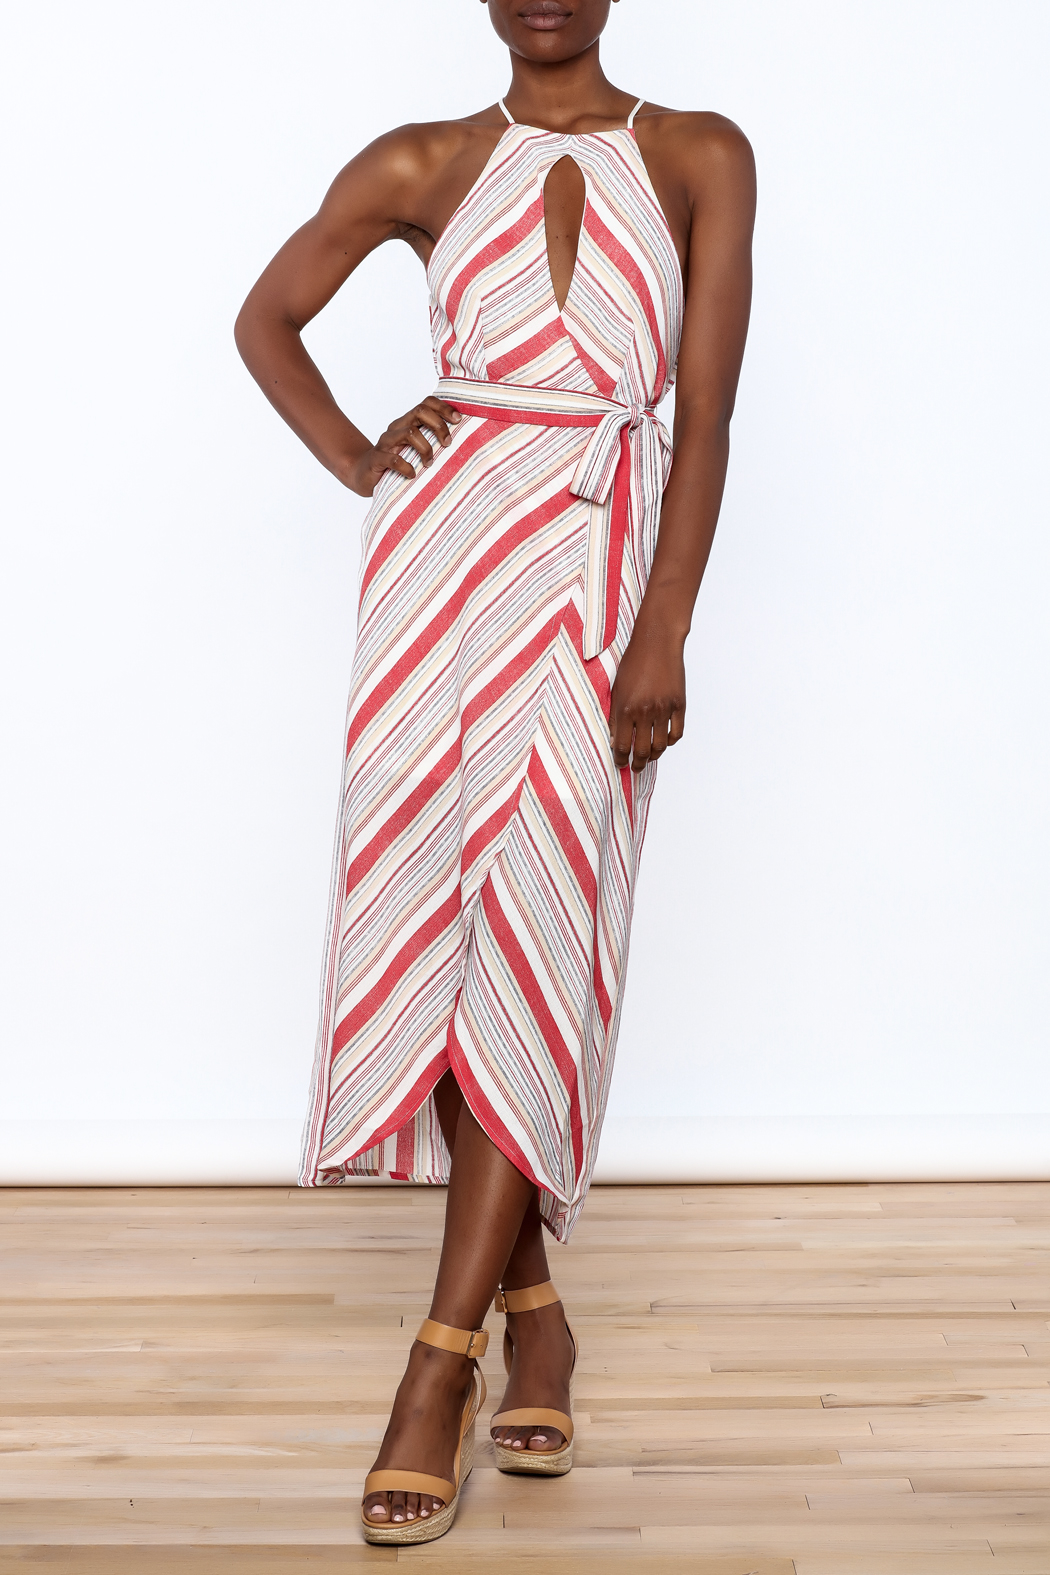 essue Red Stripe Sleeveless Dress - Main Image